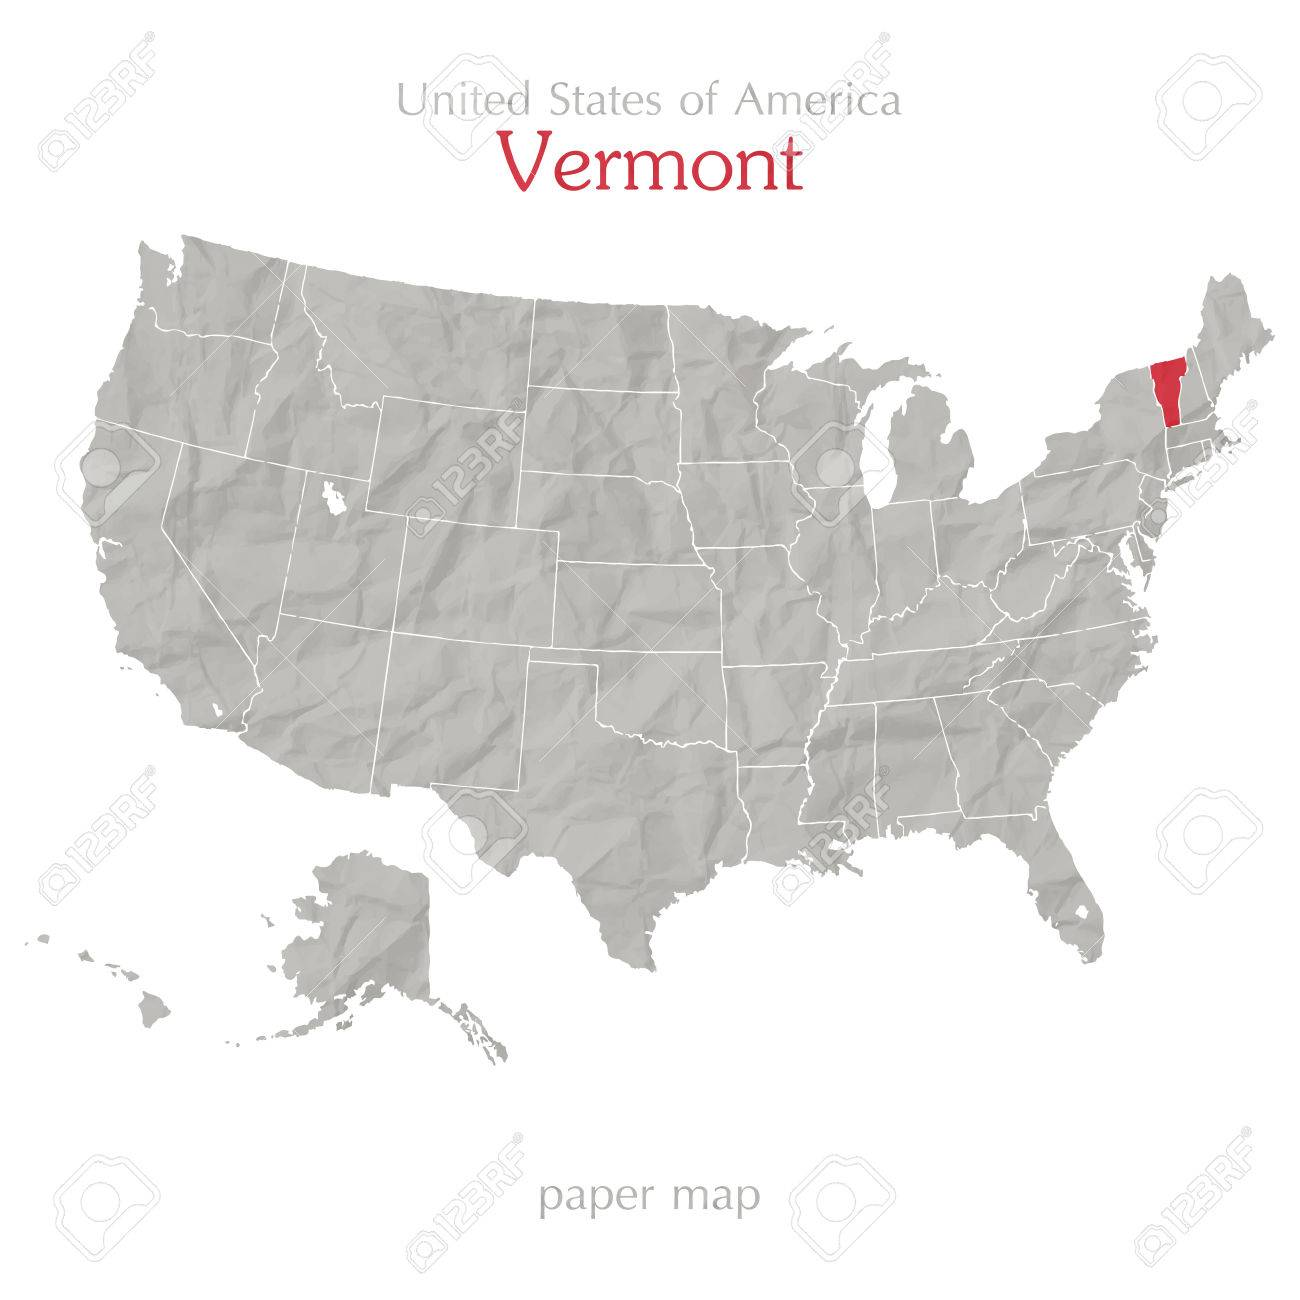 The connecticut river defines its border with new hampshire in the east; United States Of America Map And Vermont State Territory On Textured Paper Royalty Free Cliparts Vectors And Stock Illustration Image 28257321